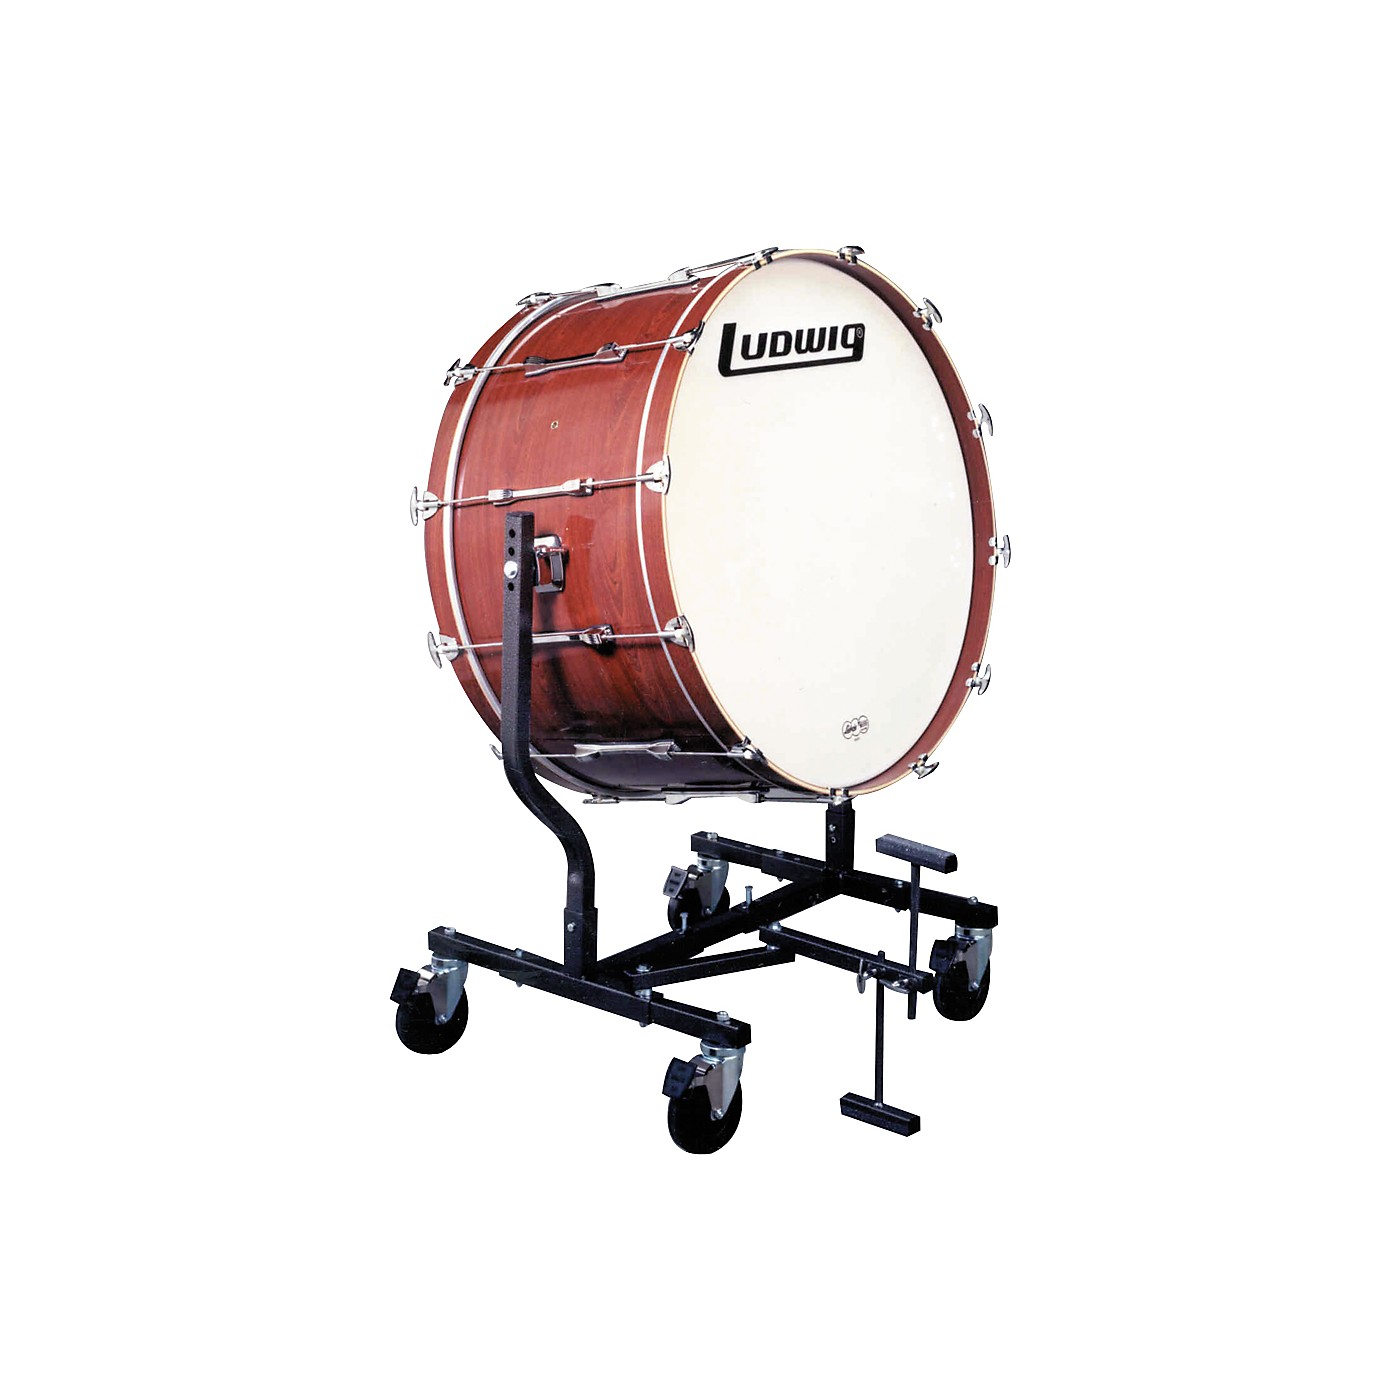 Ludwig Concert Bass Drum w/ LE787 Stand thumbnail